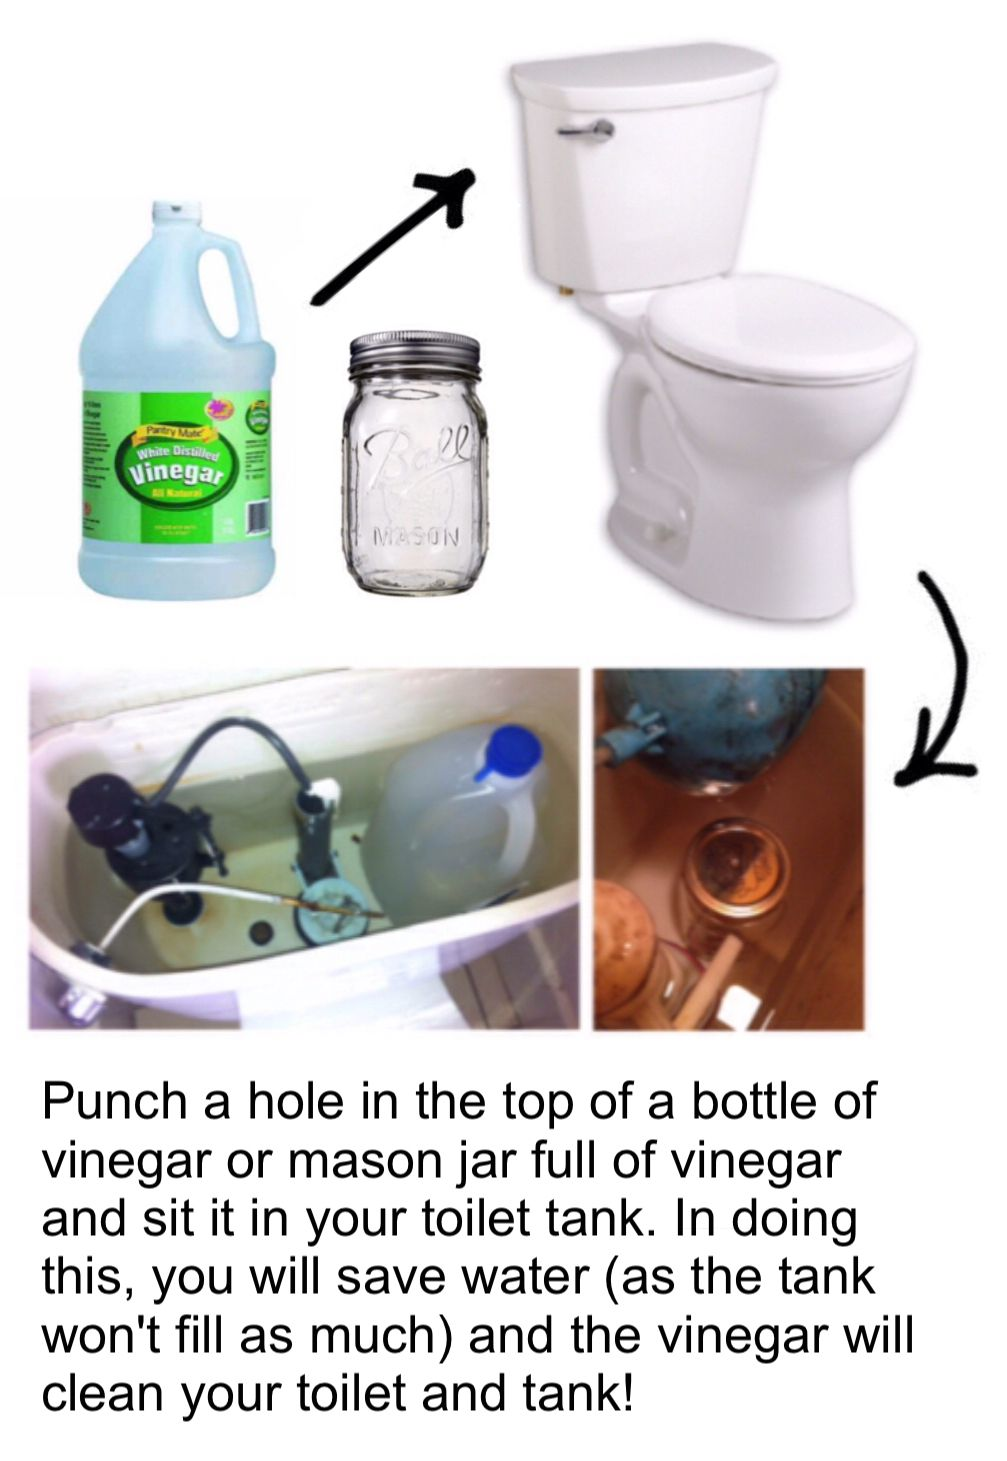 Punch a hole in the top of a bottle of vinegar or mason jar full ...